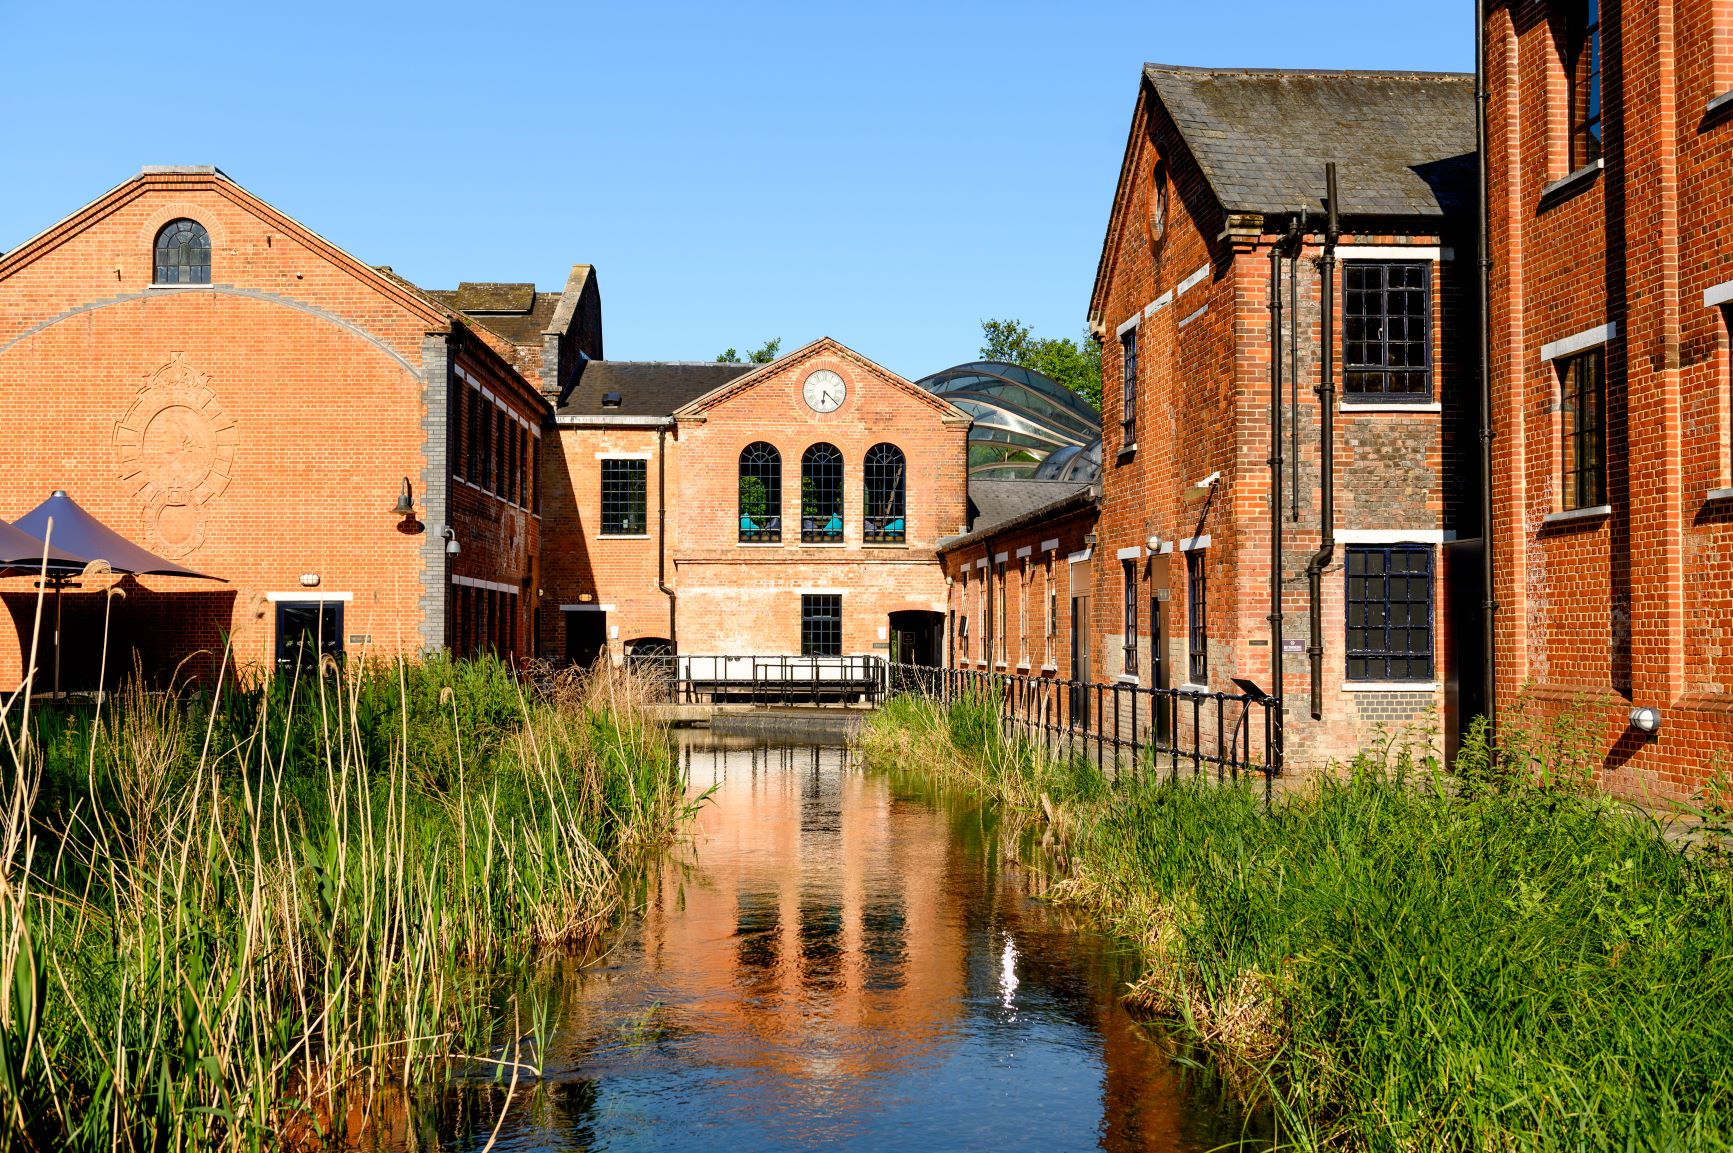 Bombay Sapphire Distillery User Conference